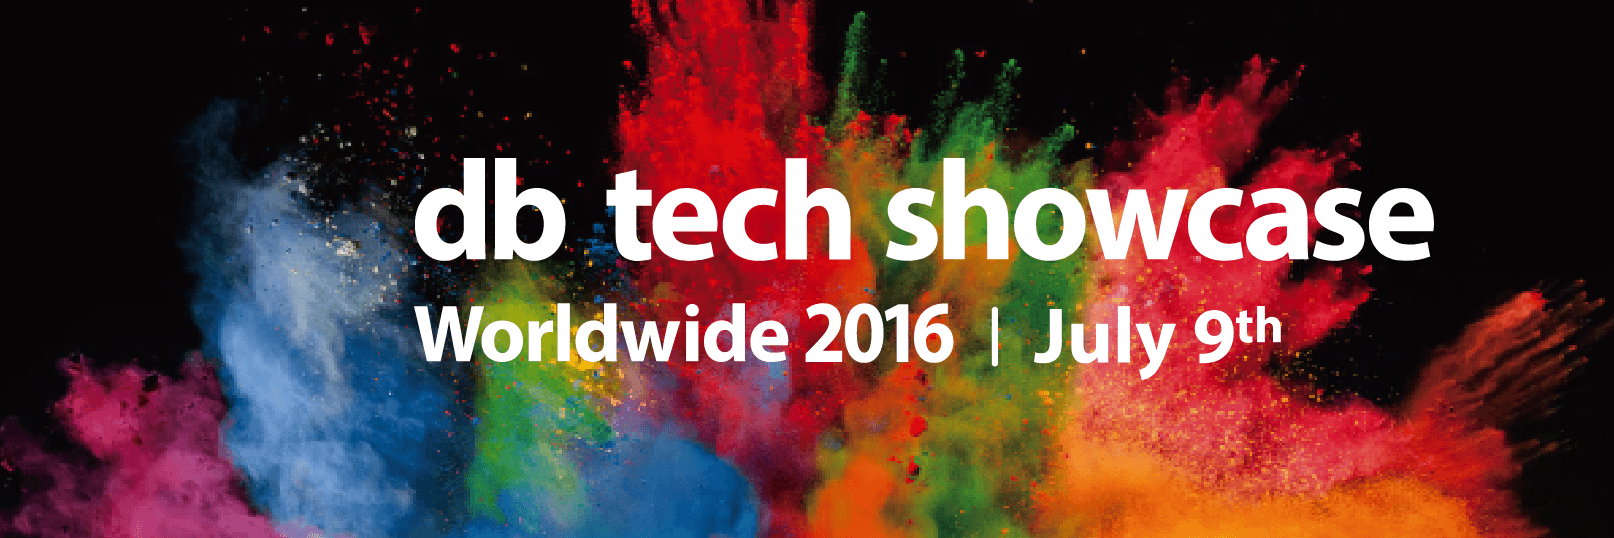 db tech showcase Worldwide 2016